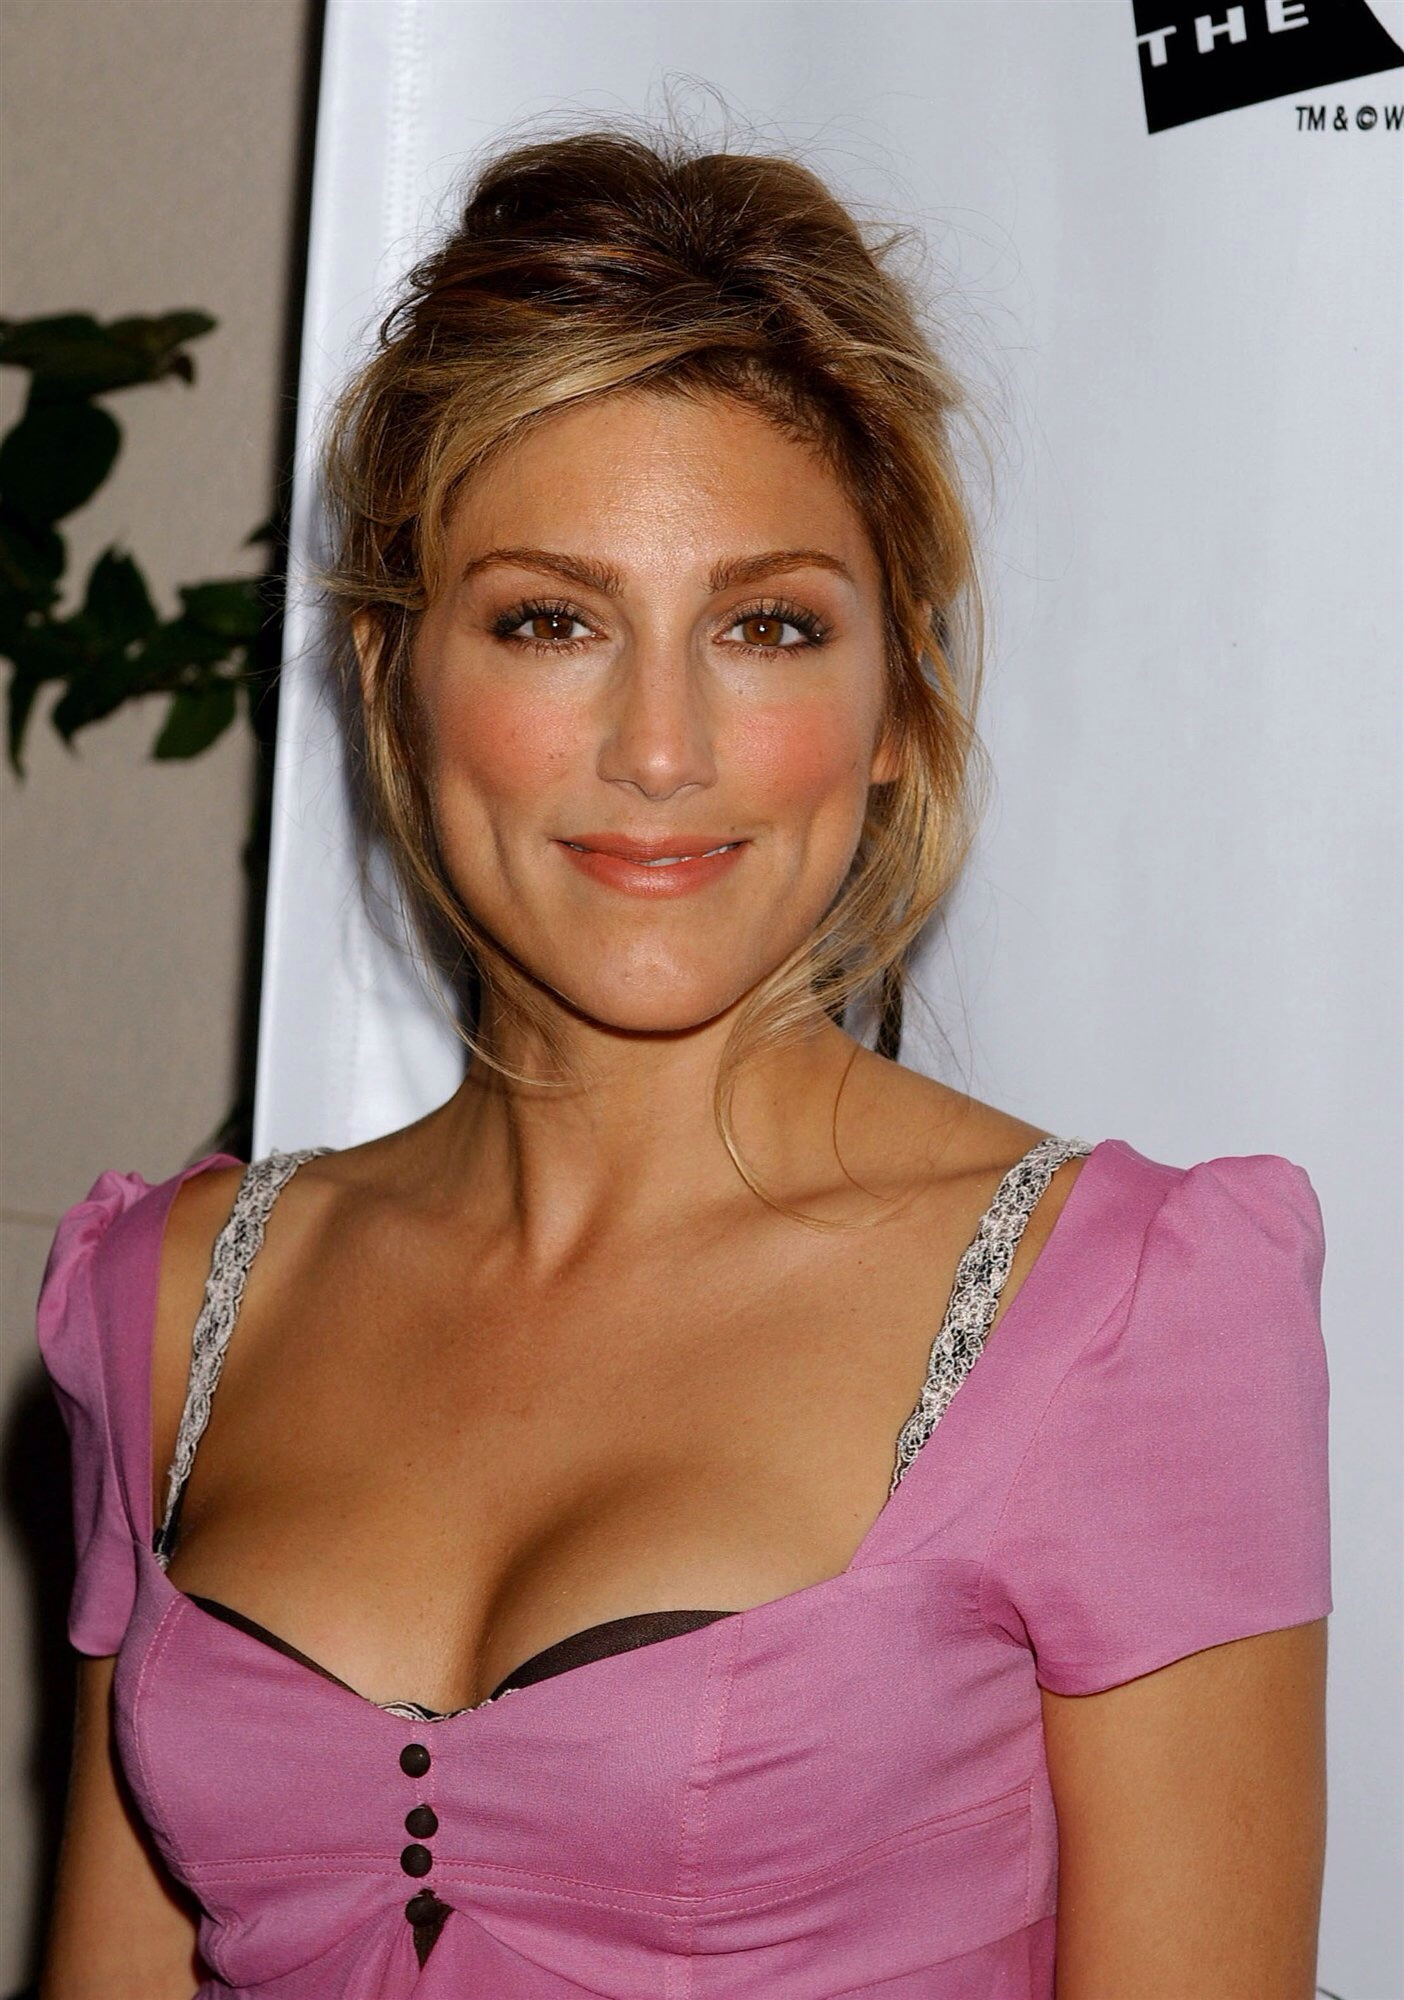 Jennifer Esposito | Law and Order | FANDOM powered by Wikia Jennifer Esposito